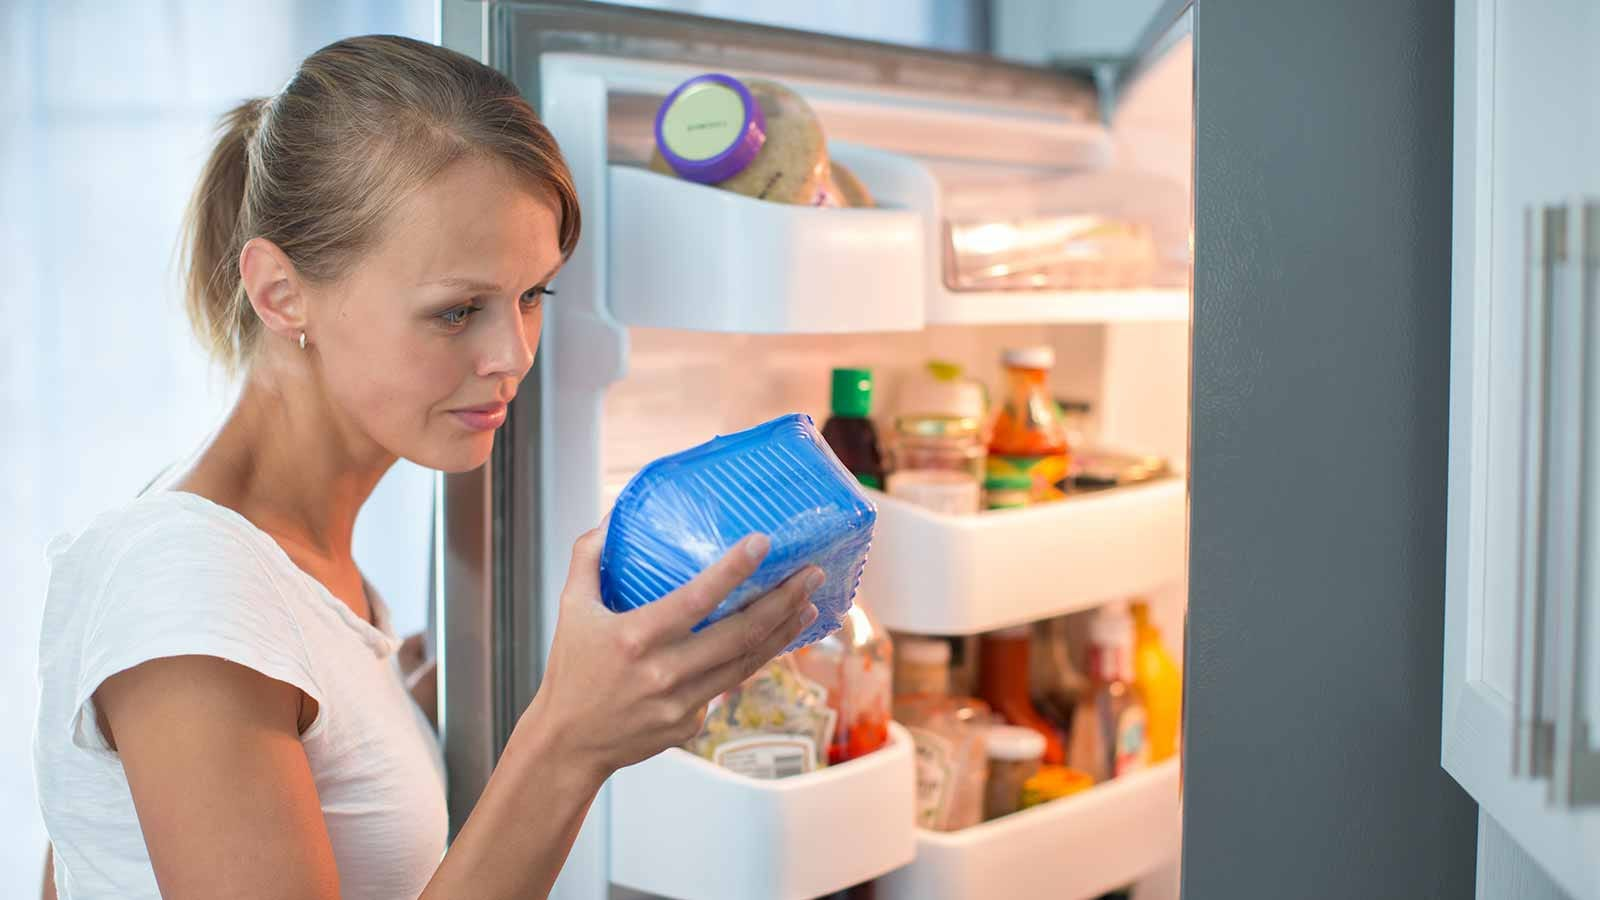 woman scrutinizing the expiration date on a container of food